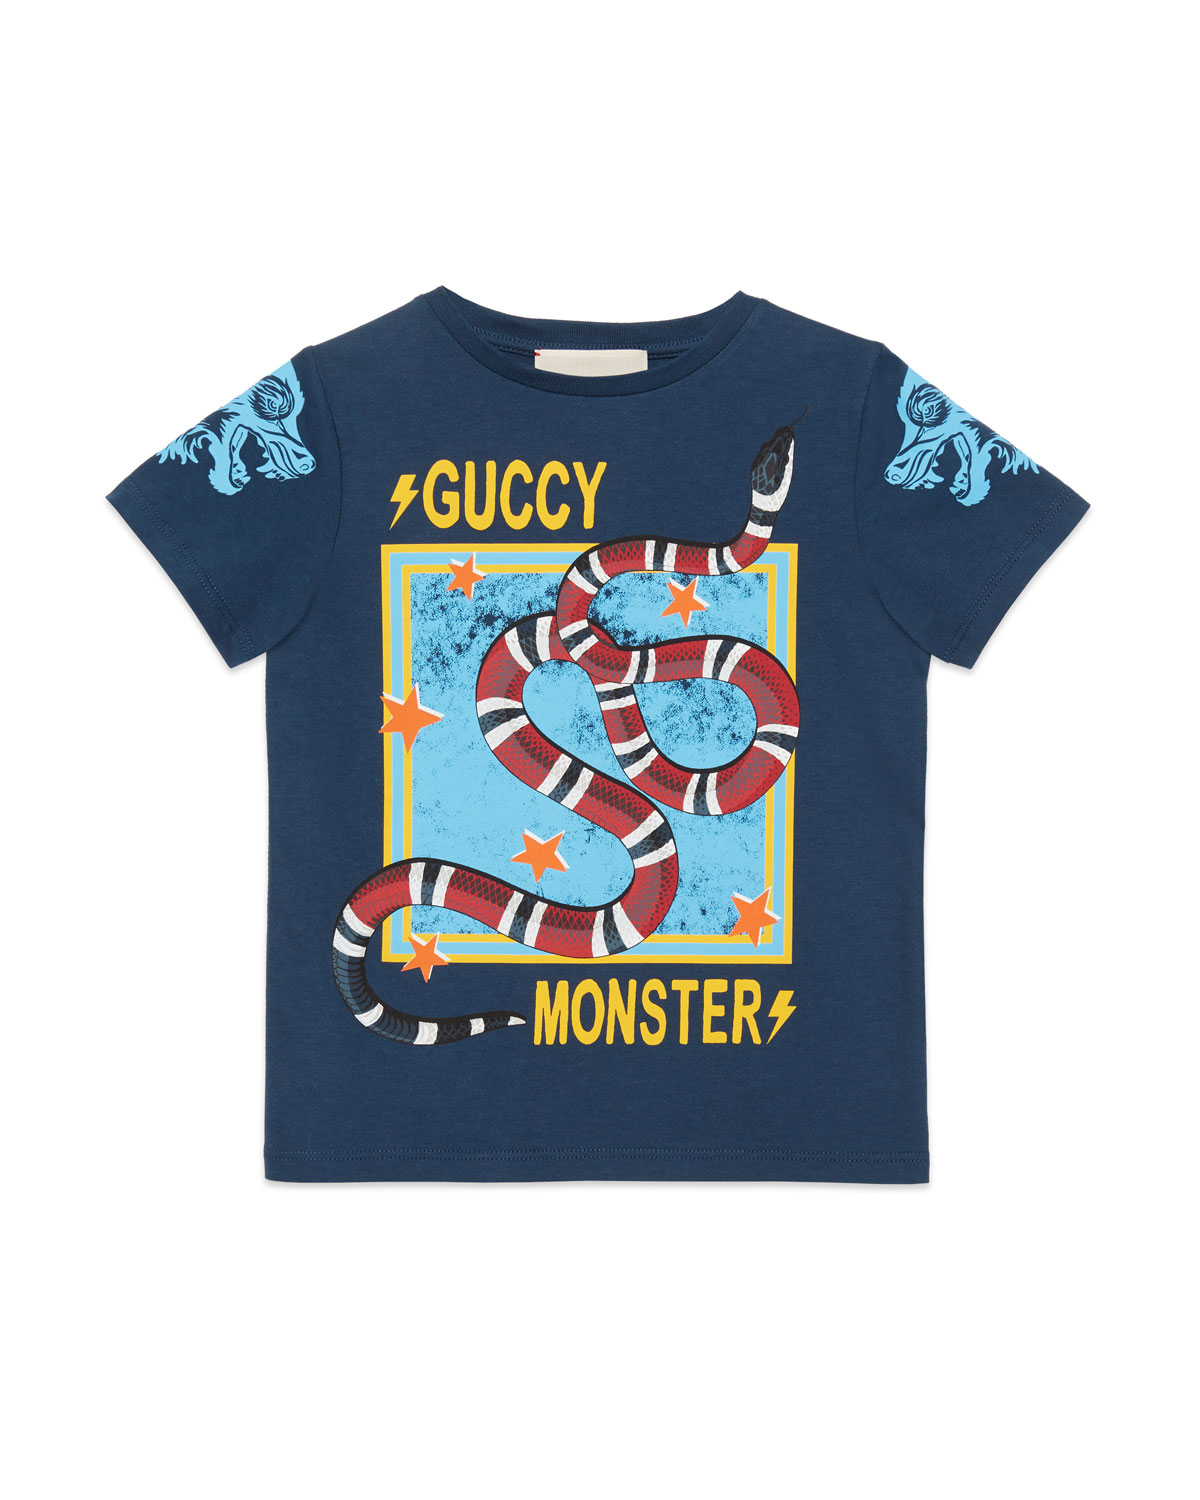 6d866c68a80bd Gucci Guccy Monster   Kingsnake T-Shirt